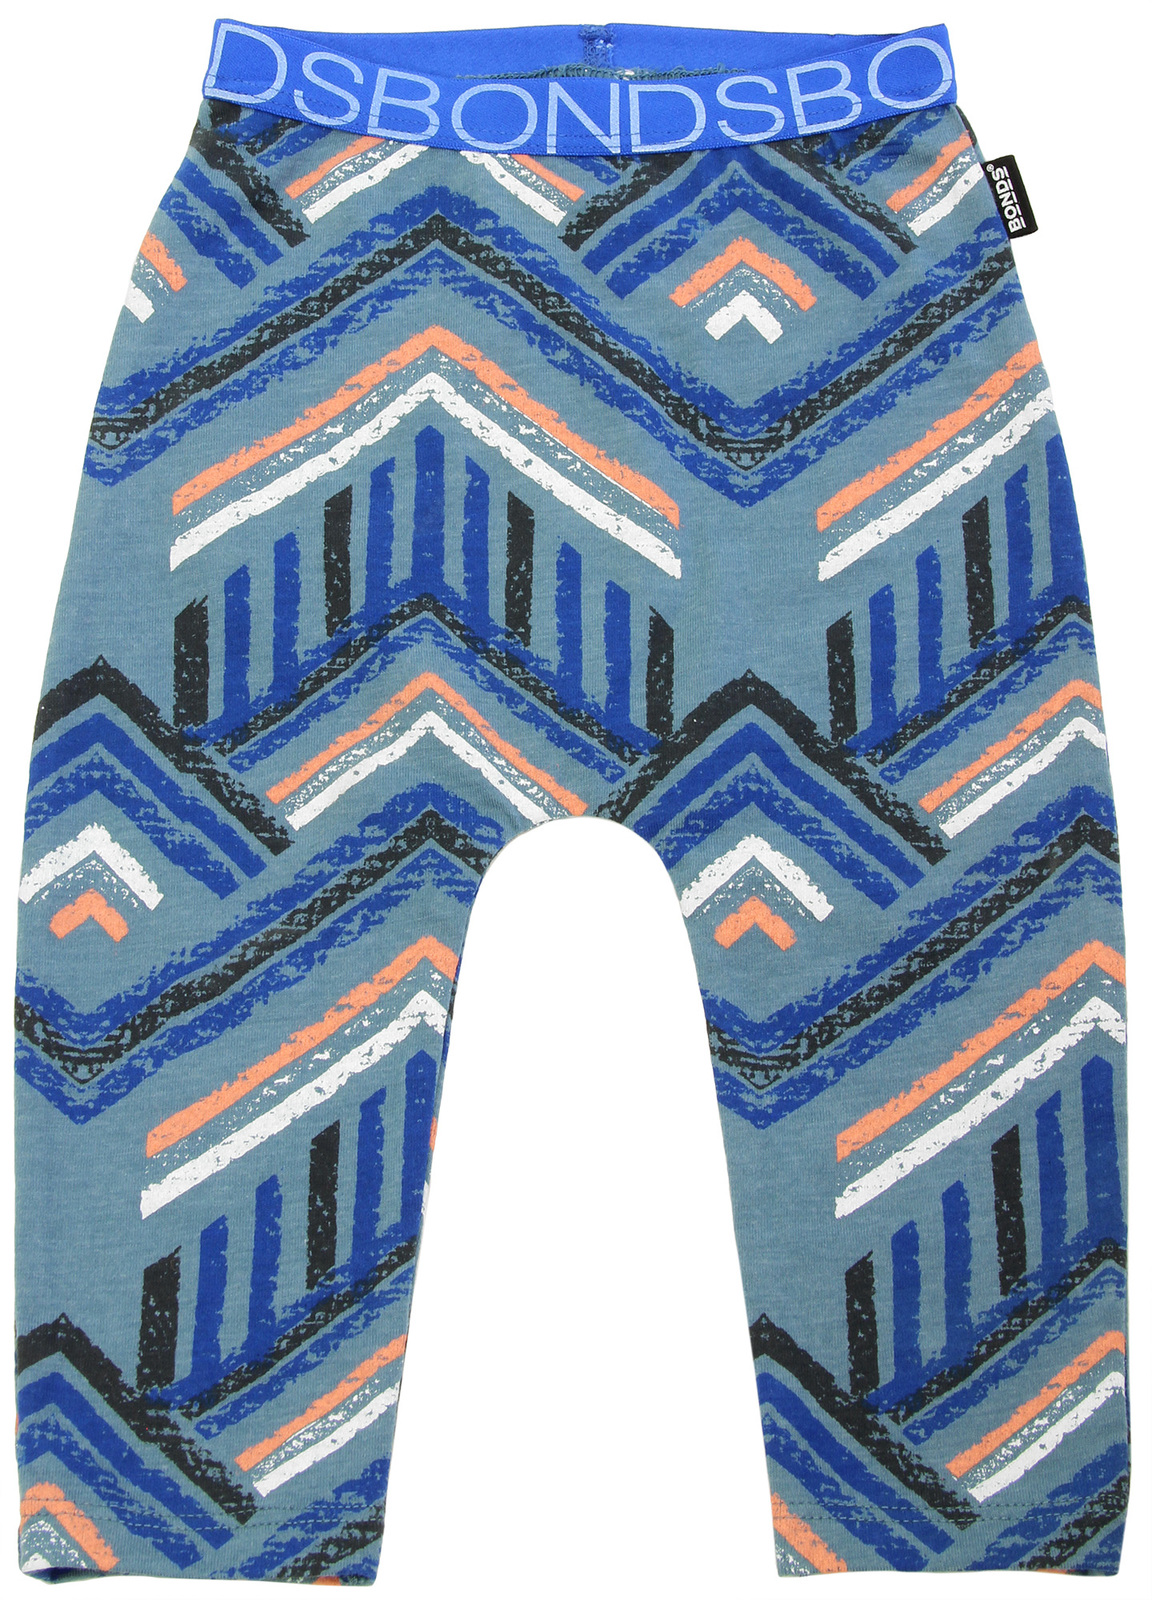 Bonds Stretchy Leggings - Surf Tribe (3-6 Months) image